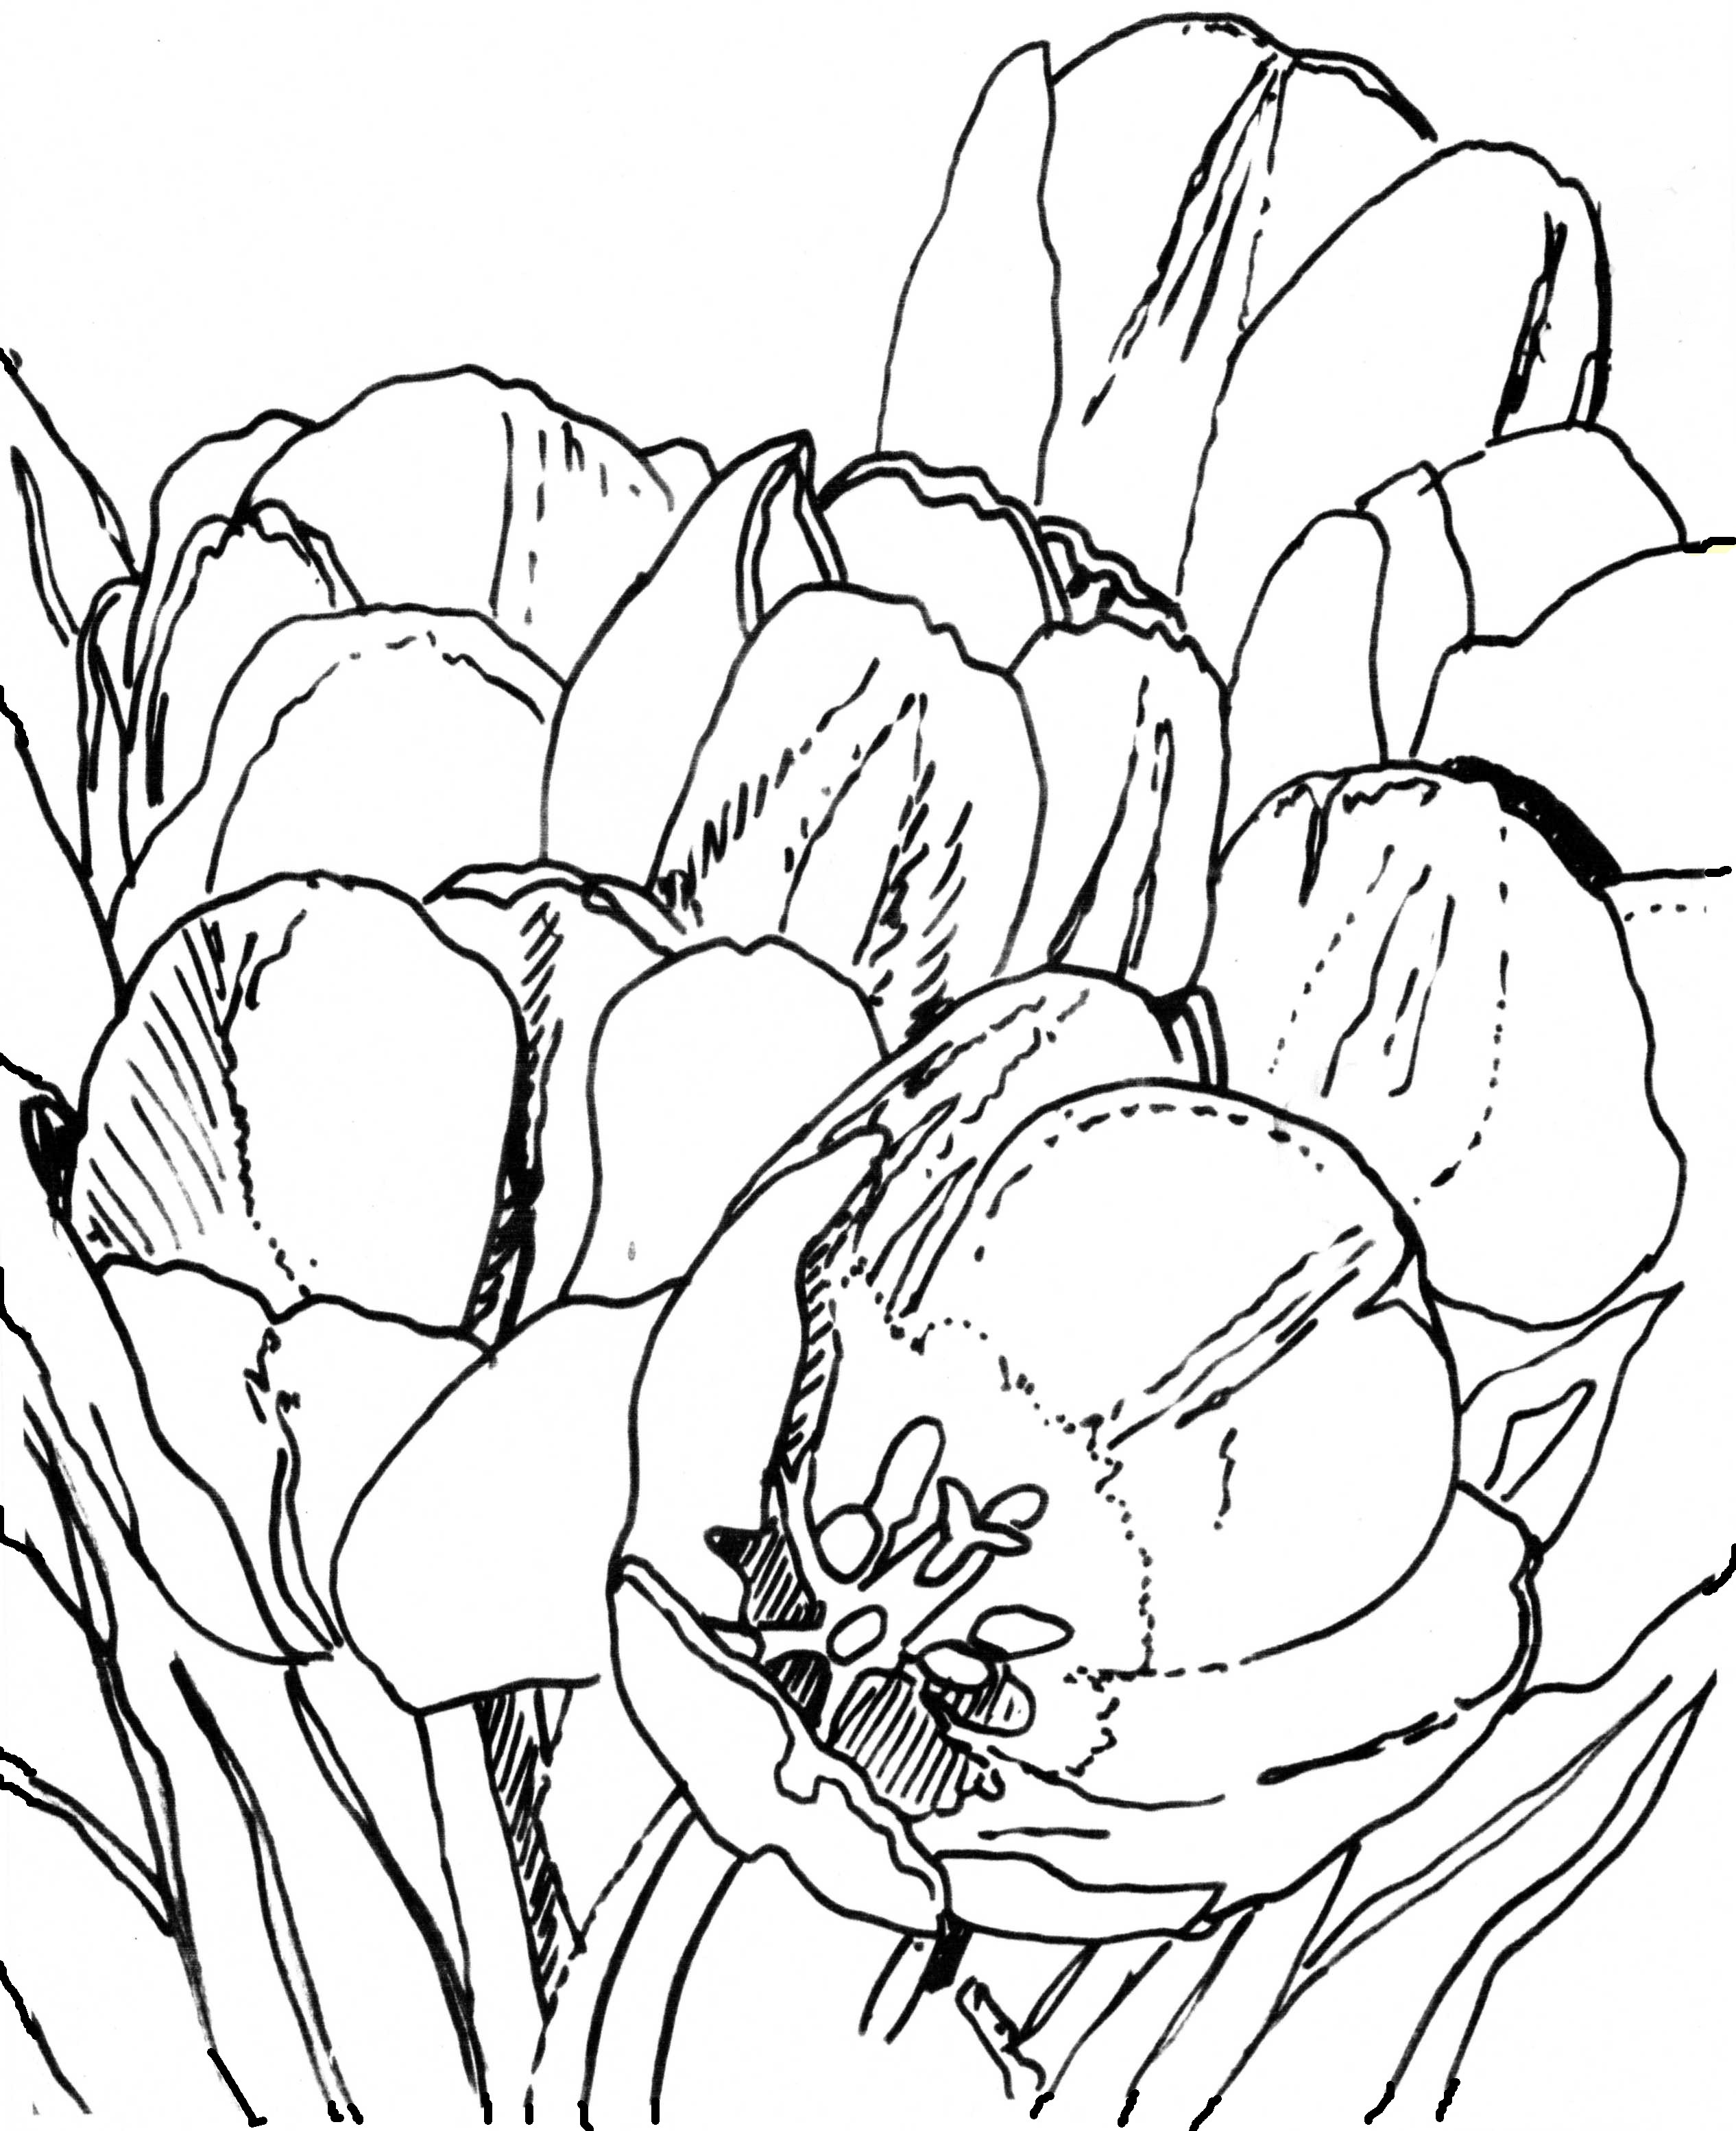 Drawing of Tulips